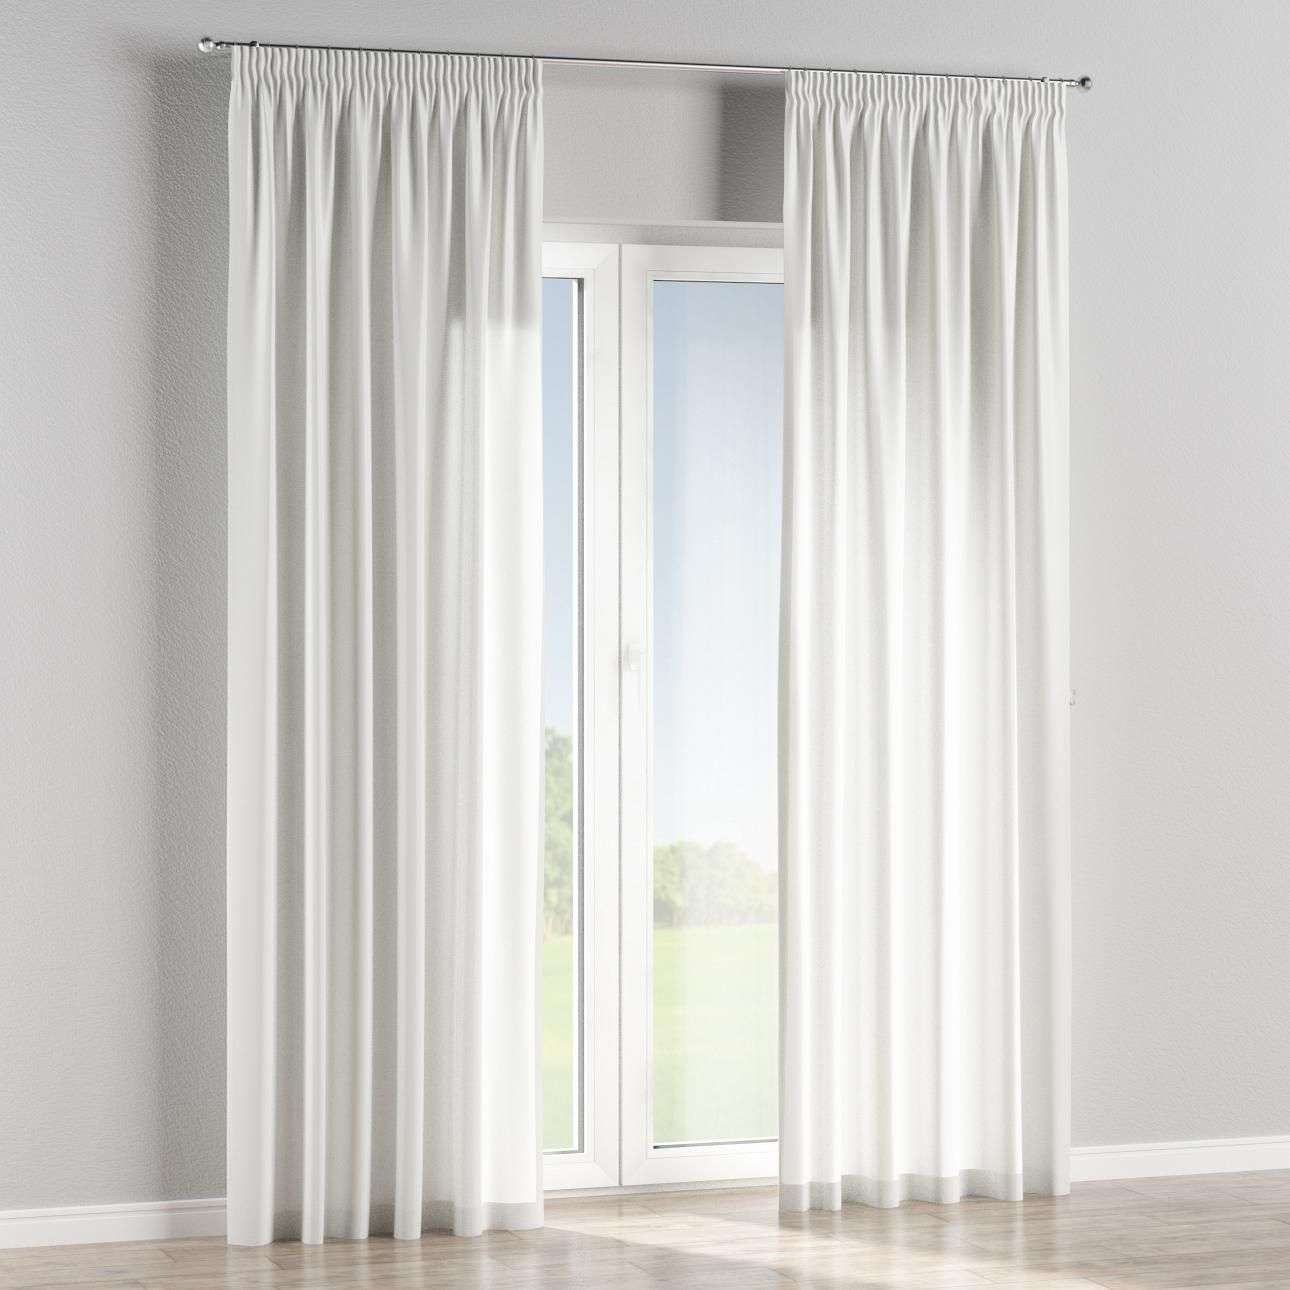 Pencil pleat curtains in collection SALE, fabric: 137-59